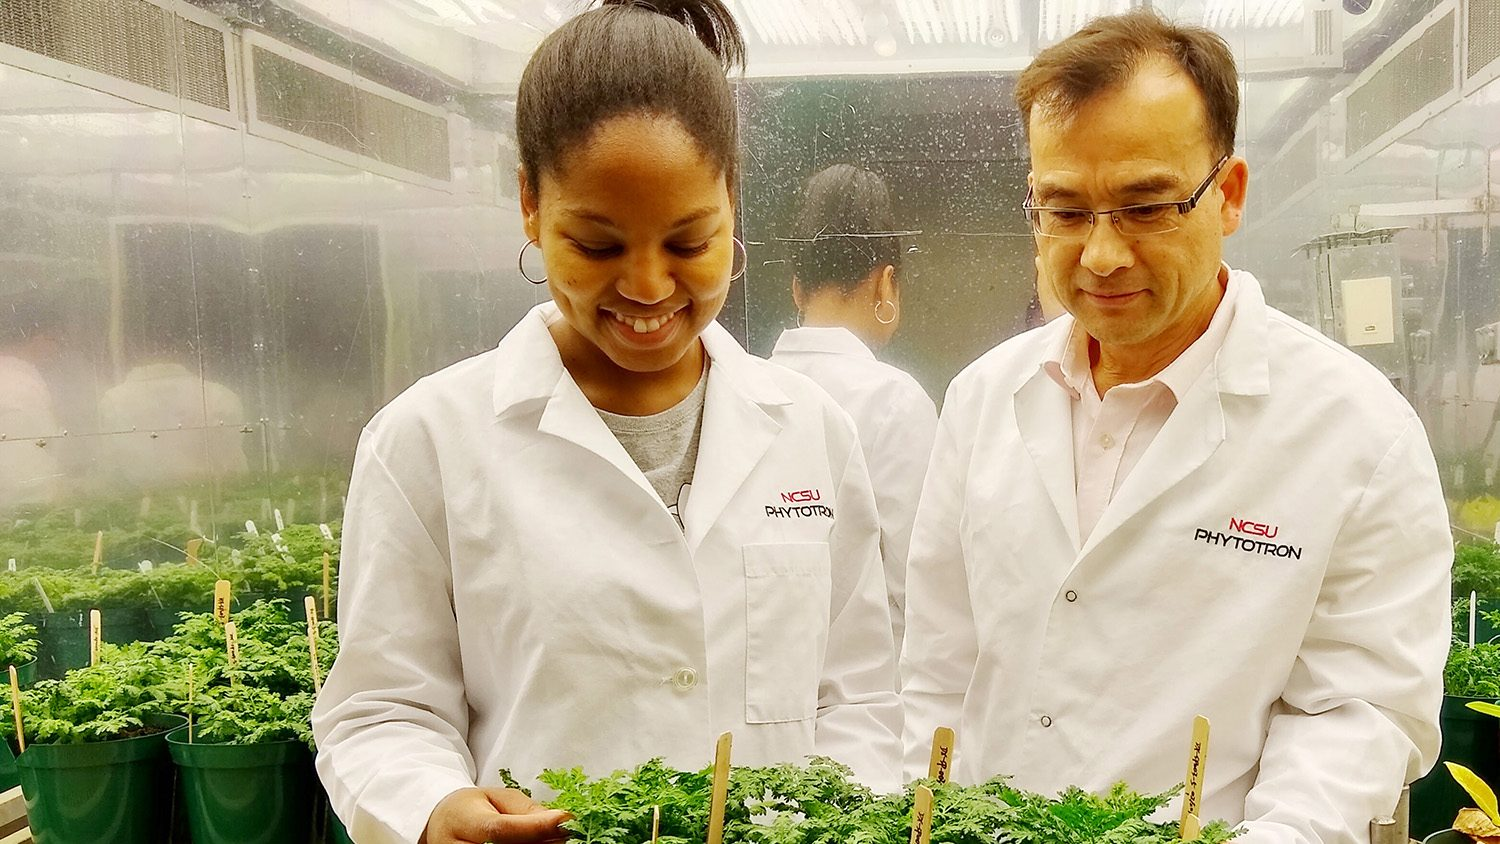 Researchers in white lab coats looking at plants in NC State's Phytotron